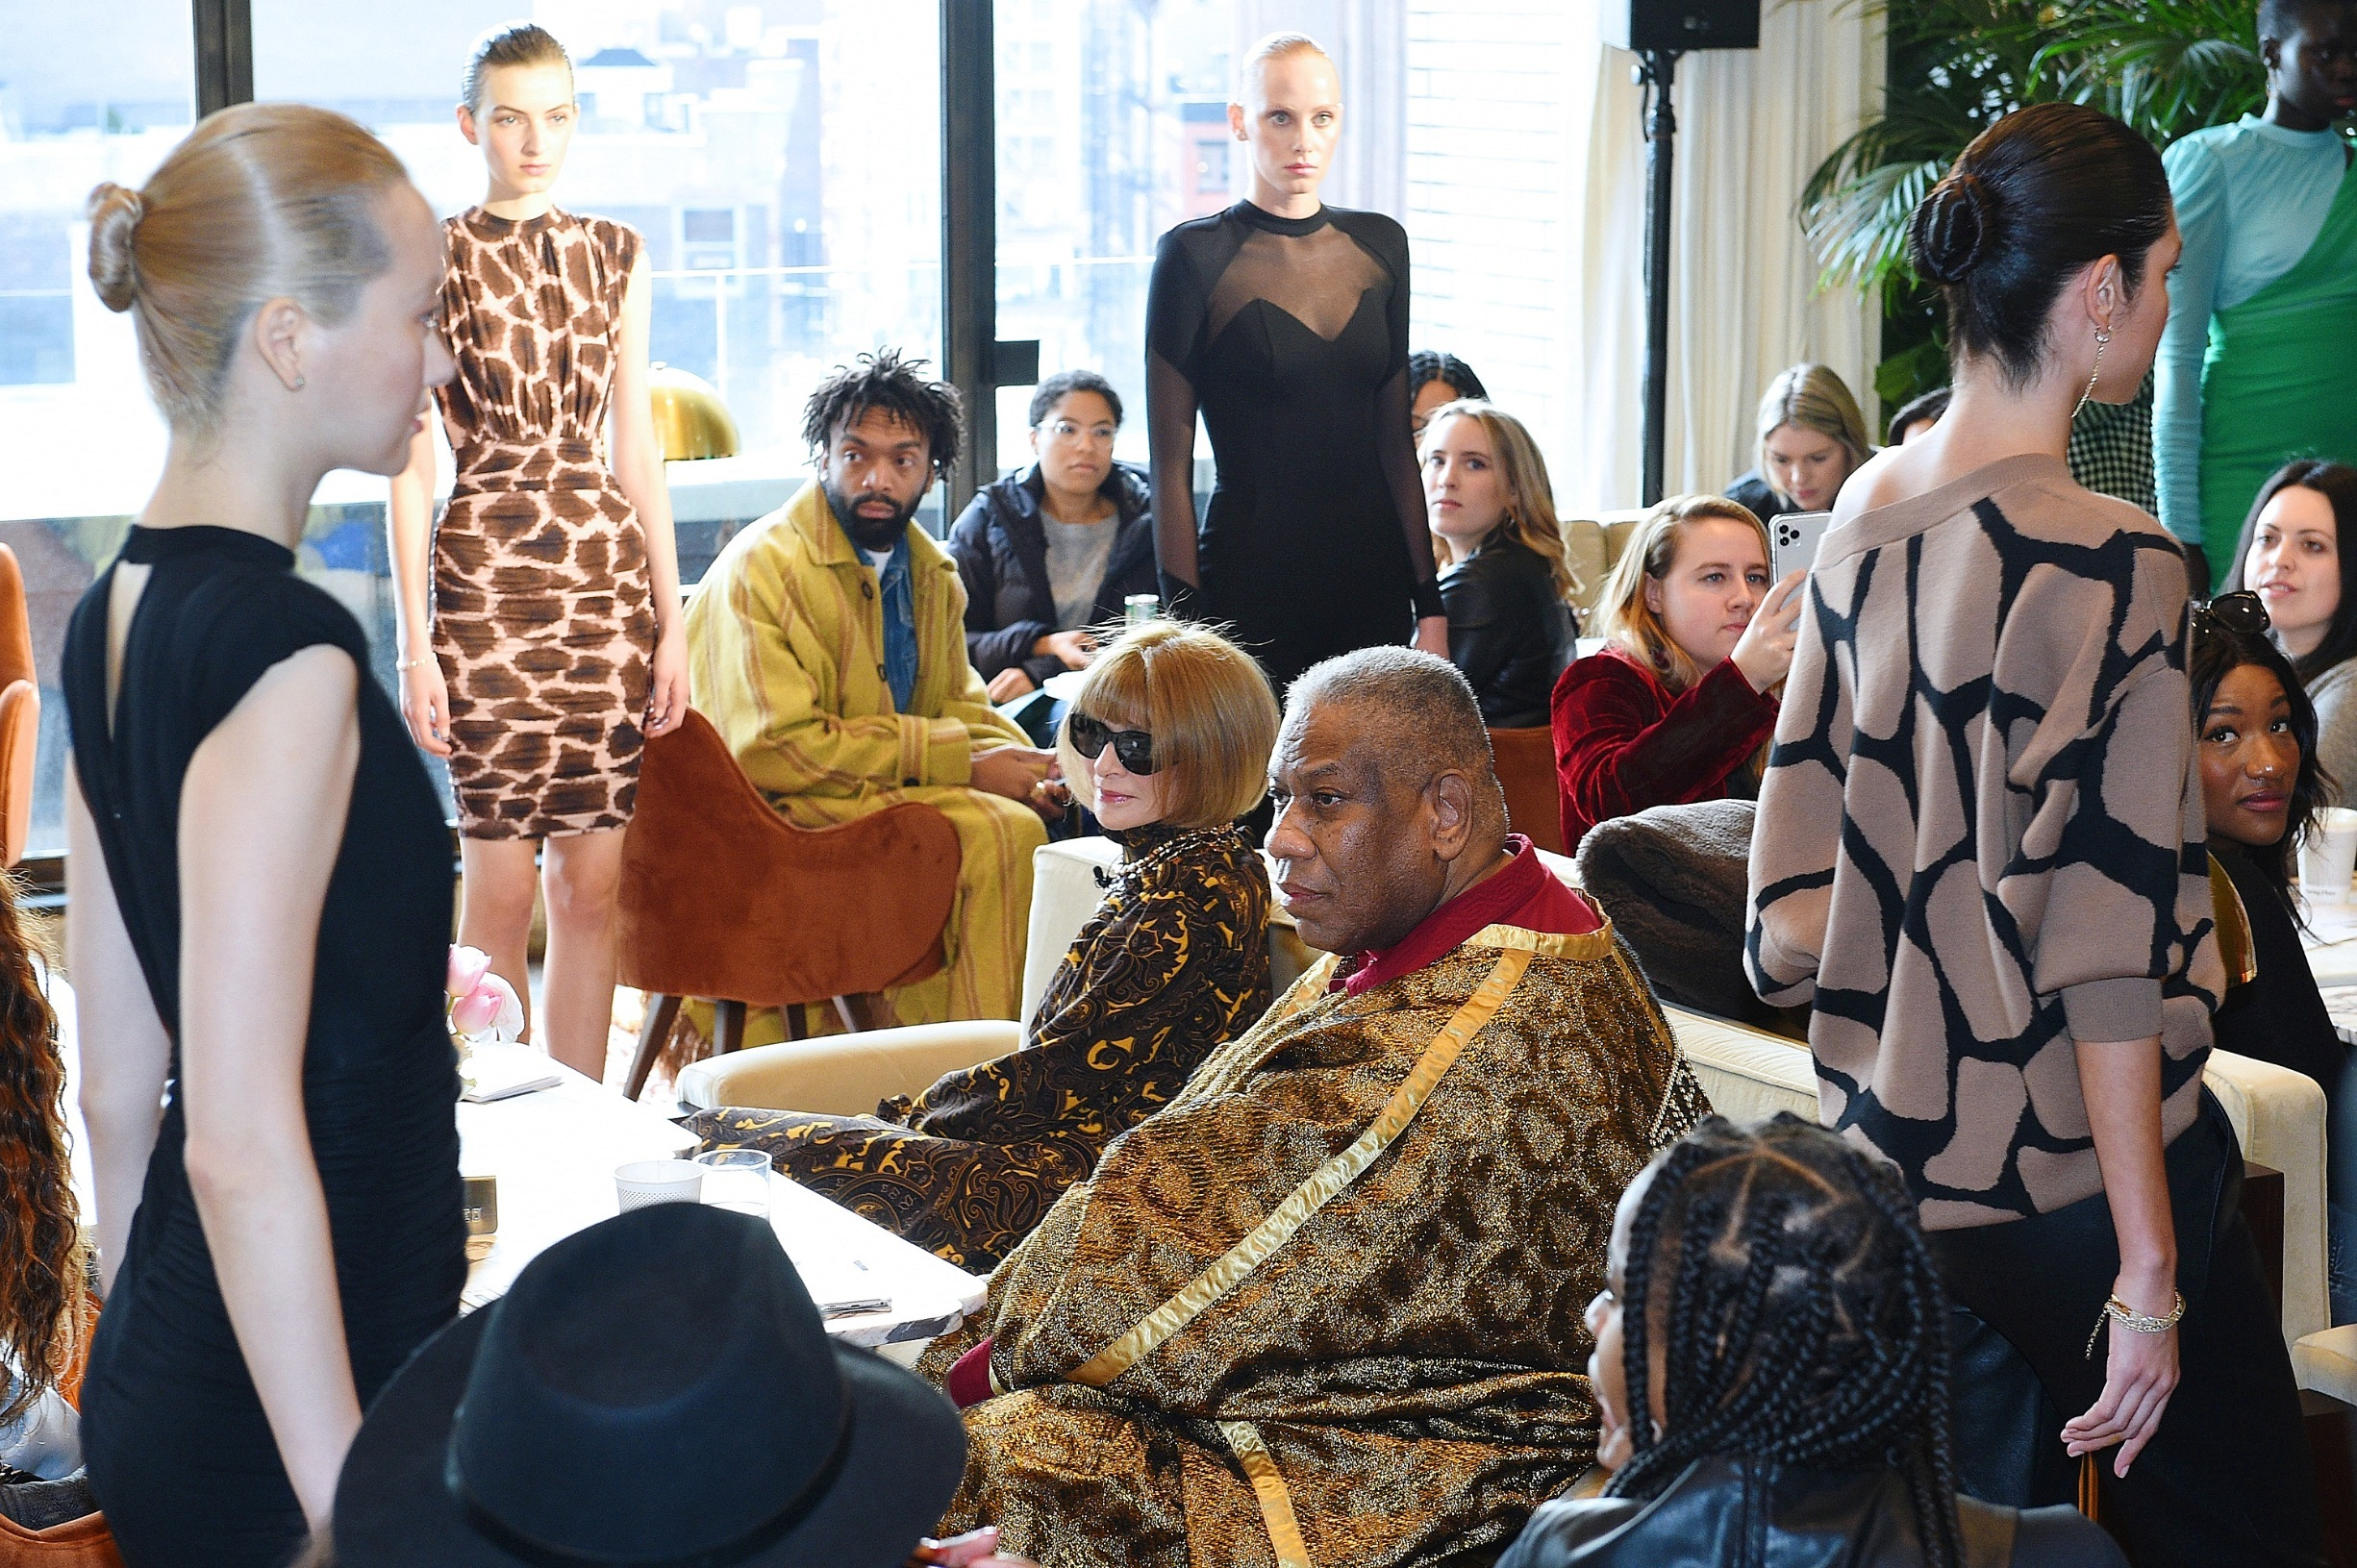 NEW YORK, NEW YORK - FEBRUARY 12: Anna Wintour and André Leon Talley attend S by Serena Spring 2020 Collection Reveal with Serena Williams and Anna Wintour during NYFW: The Shows at Spring Studios on February 12, 2020 in New York City. (Photo by Bryan Bedder/Getty Images for IMG)